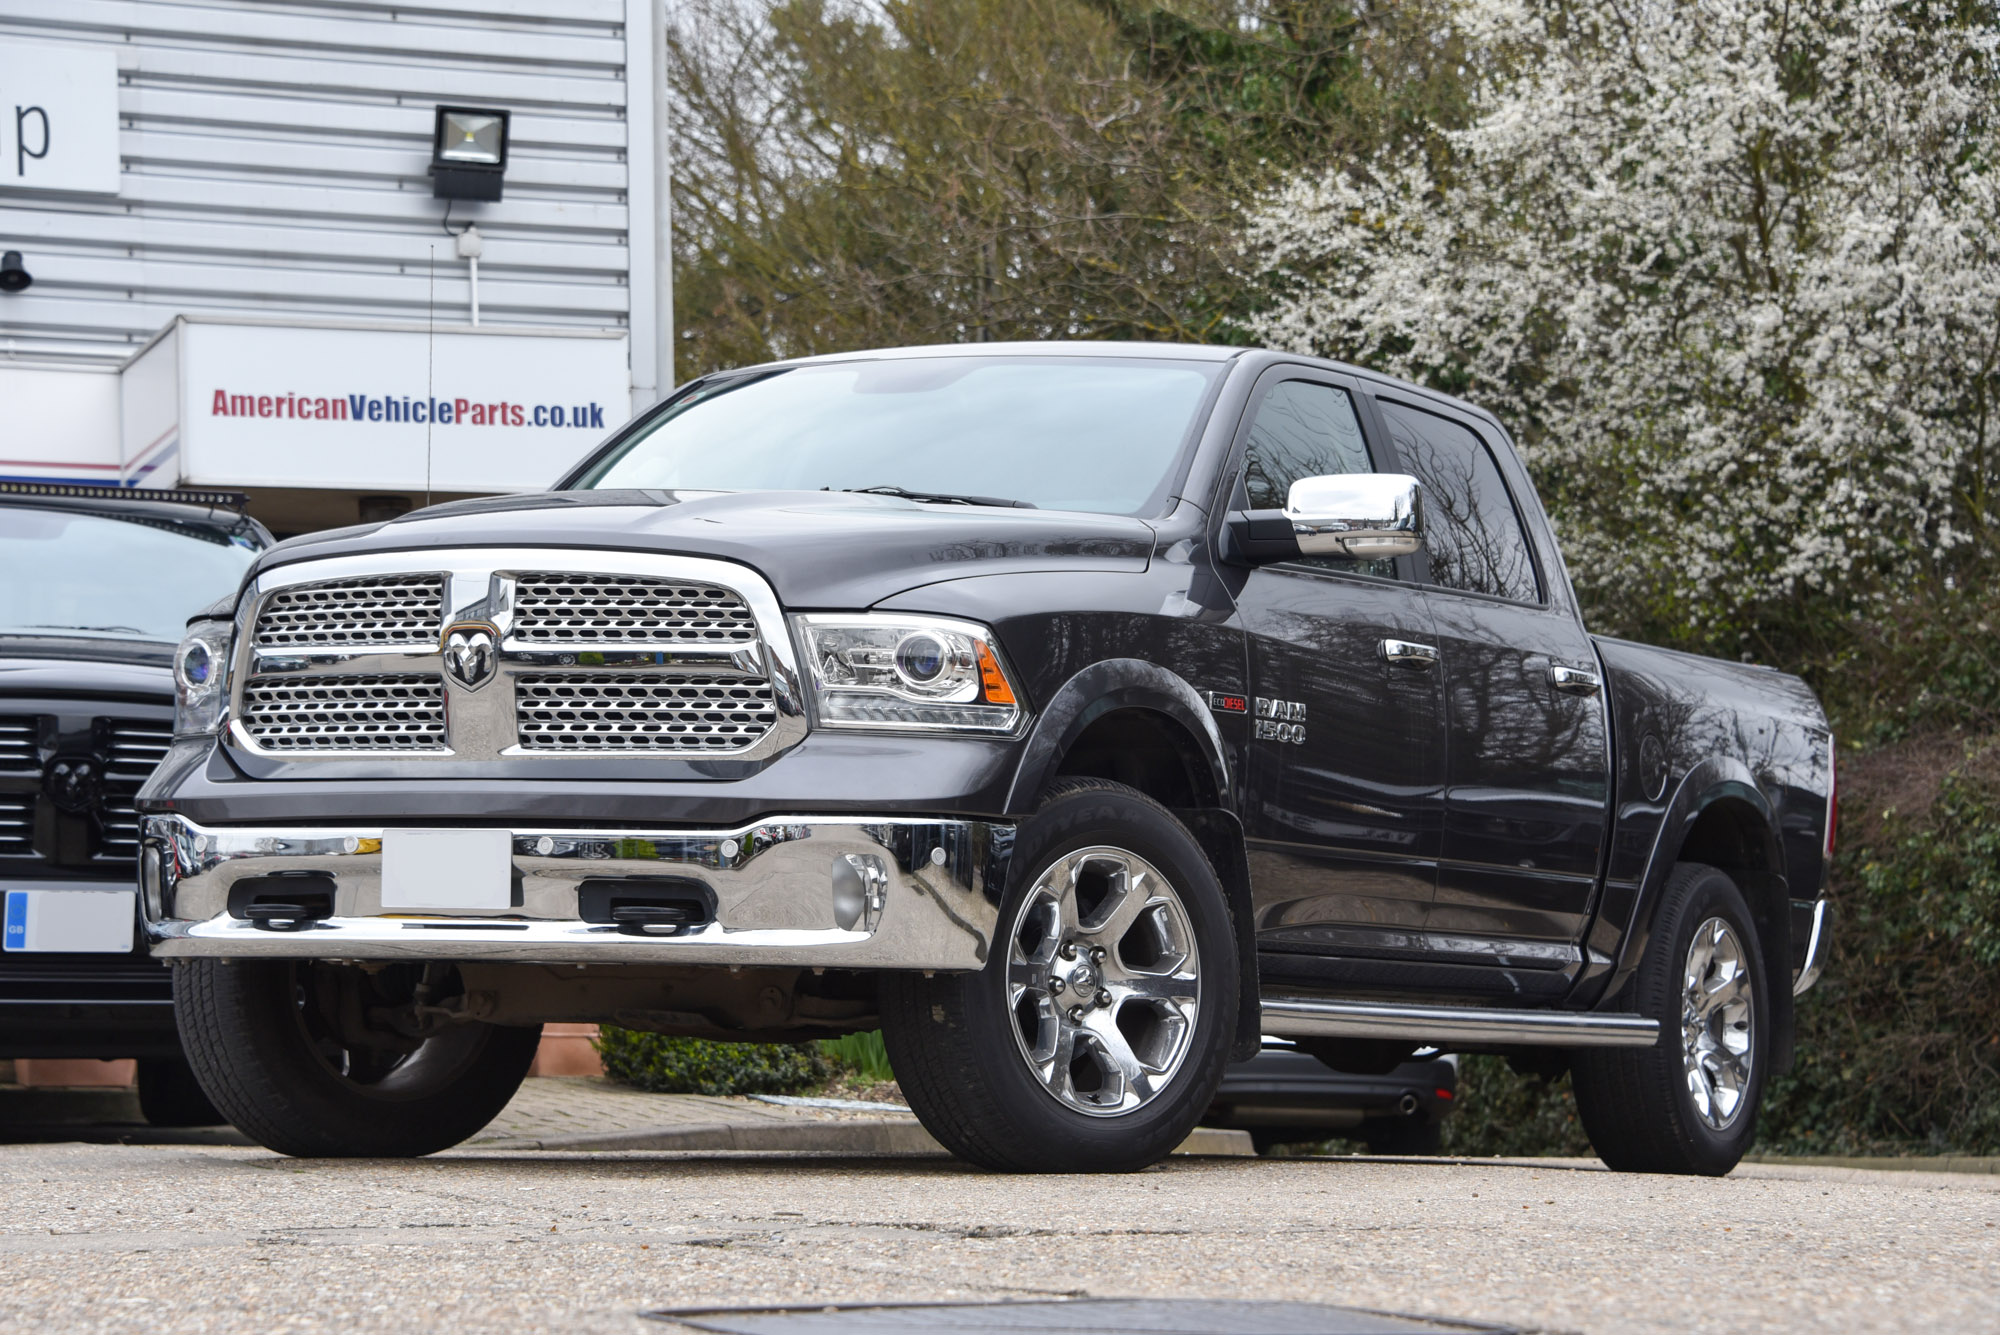 2015 dodge ram 1500 diesel gallery drivins. Black Bedroom Furniture Sets. Home Design Ideas